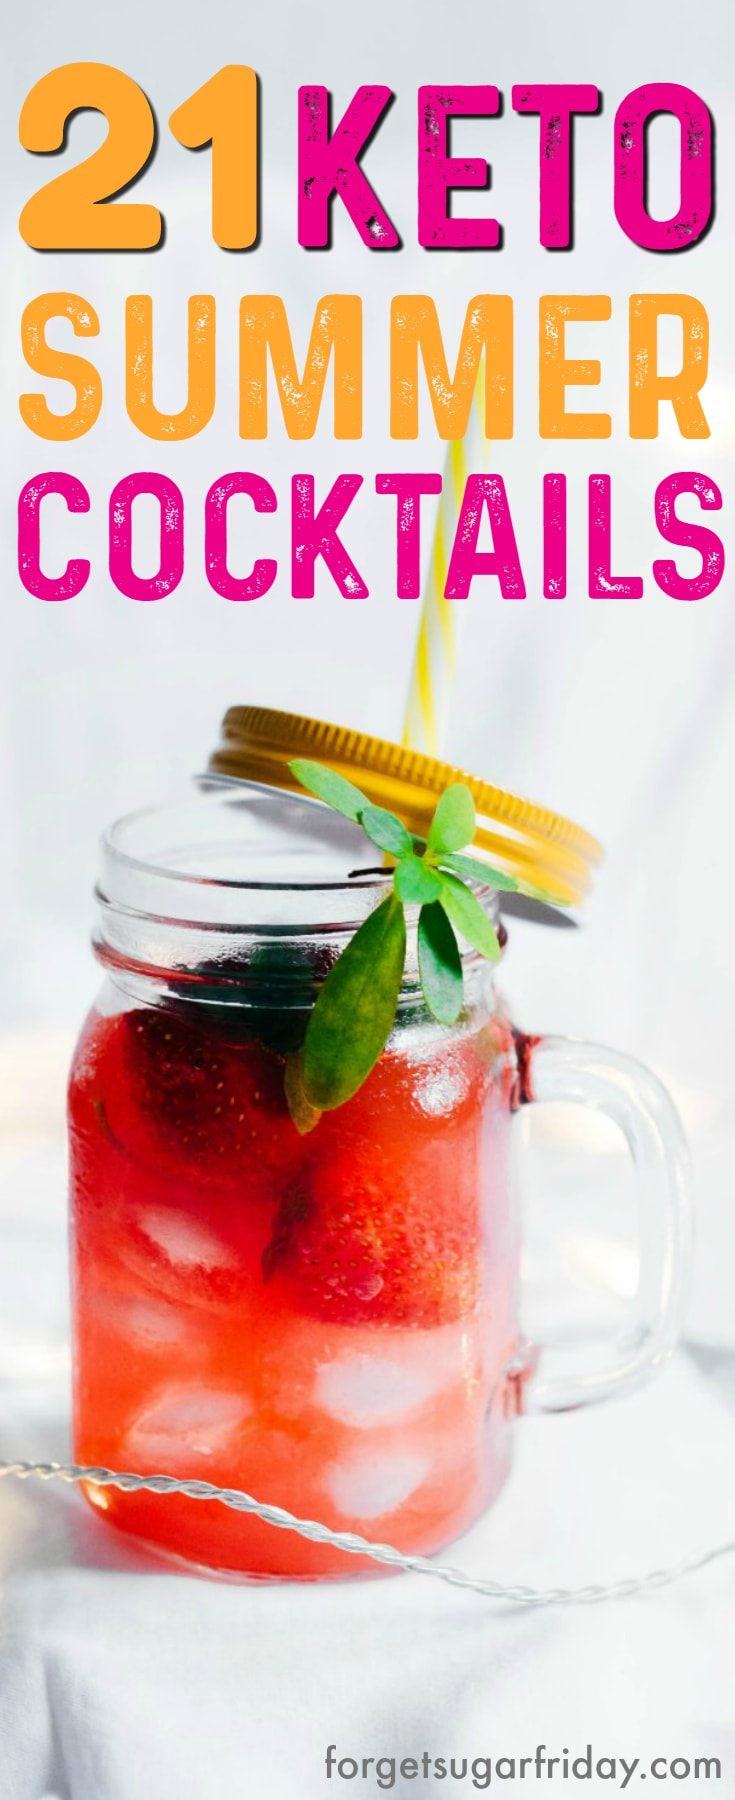 The BEST Keto Cocktails!! Umm, cocktails on the keto diet? Heck yeah!! This post includes 21 AMAZING keto cocktails that taste incredible without the carbs! This post includes such a huge selection of keto recipes. Wait until you see number 9! #keto #ketogenic #ketodiet #ketorecipes #ketococktails #lowcarbcocktails